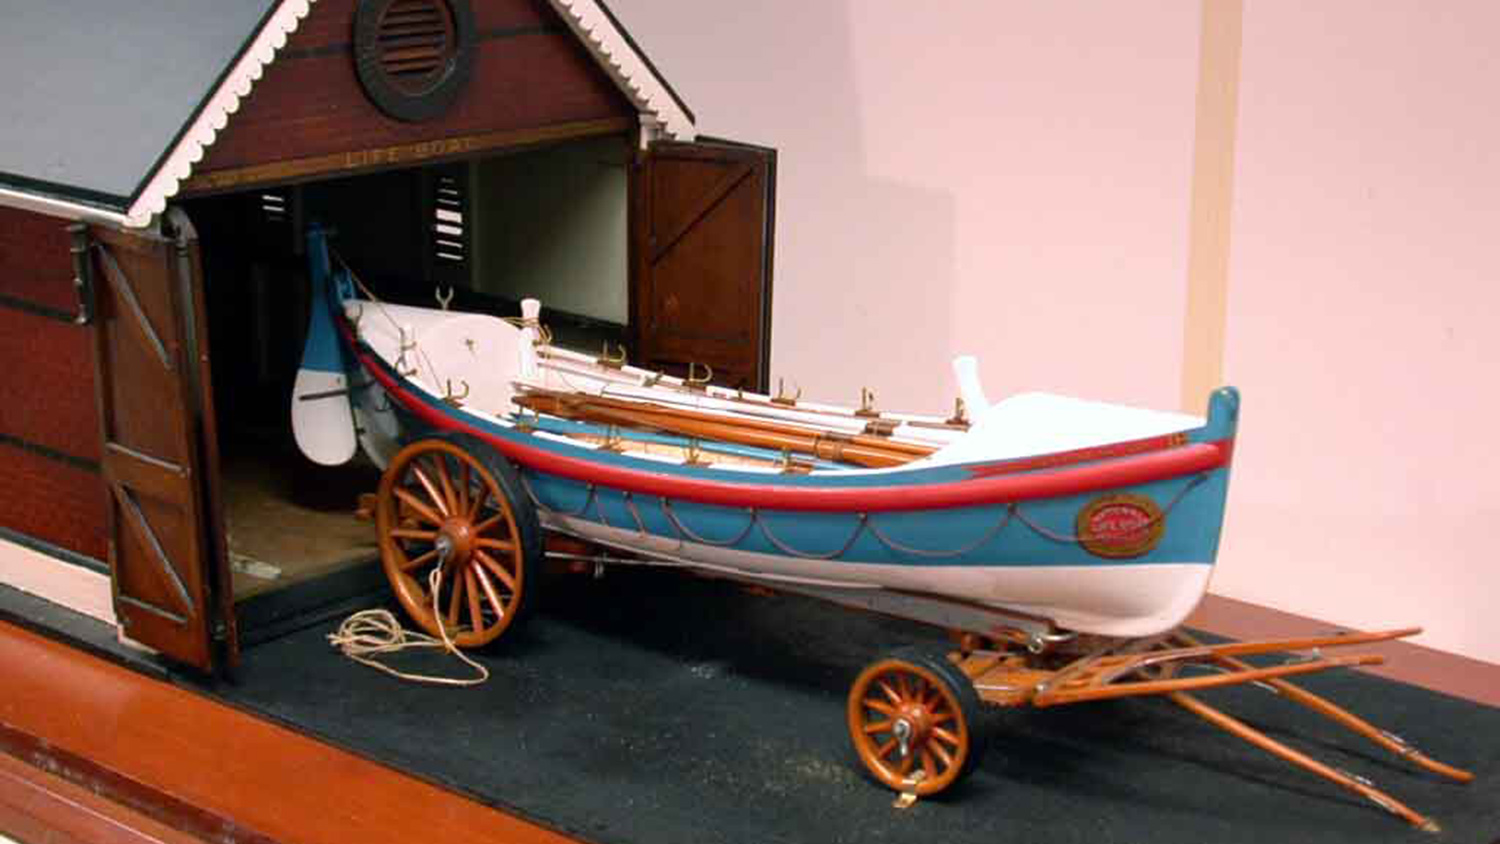 Model of Clovelly RNLI's self-righting pulling and sailing lifeboat, Alexander and Matilda (Boetefeur) from the RNLI historic collections at Poole